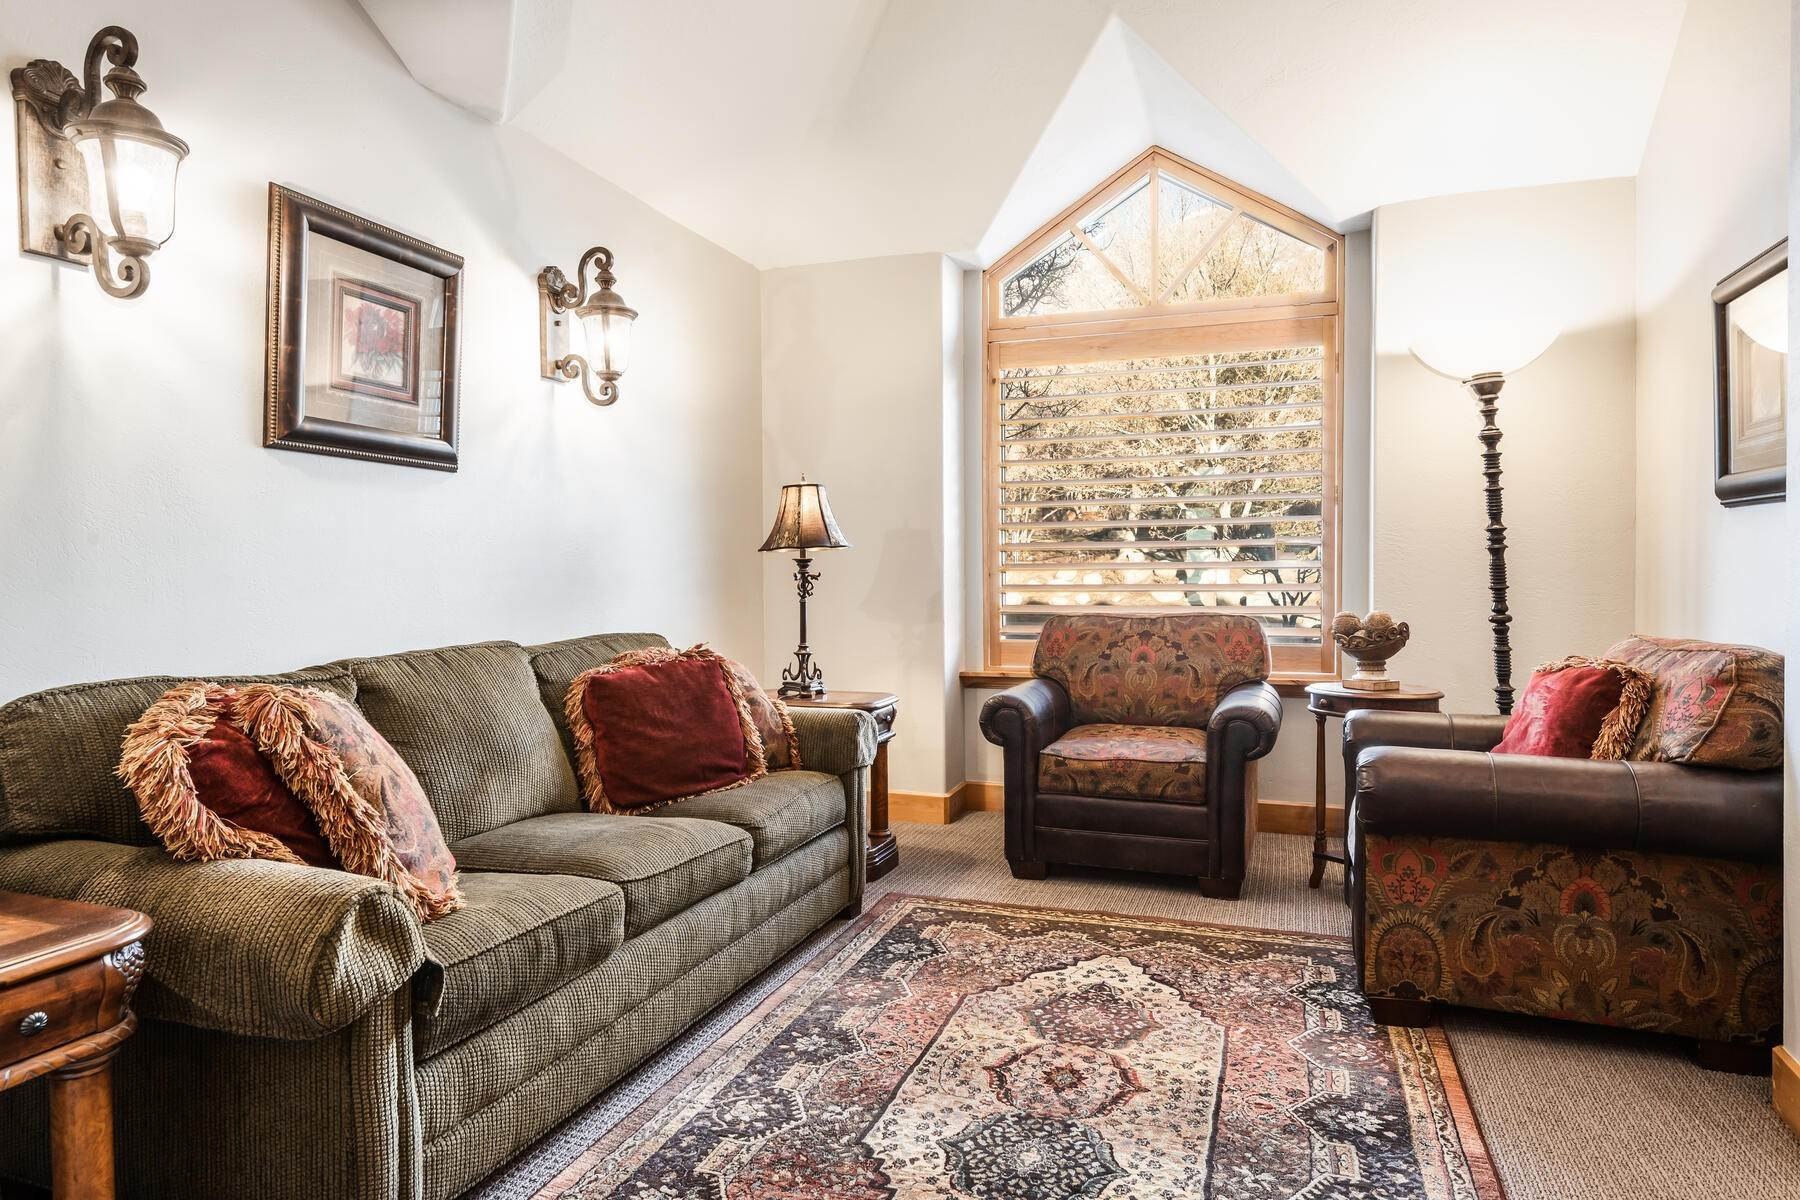 19. Single Family Homes for Sale at Beautiful 2-Story High up on Draper's East Bench 12464 S 1840 E Draper, Utah 84020 United States